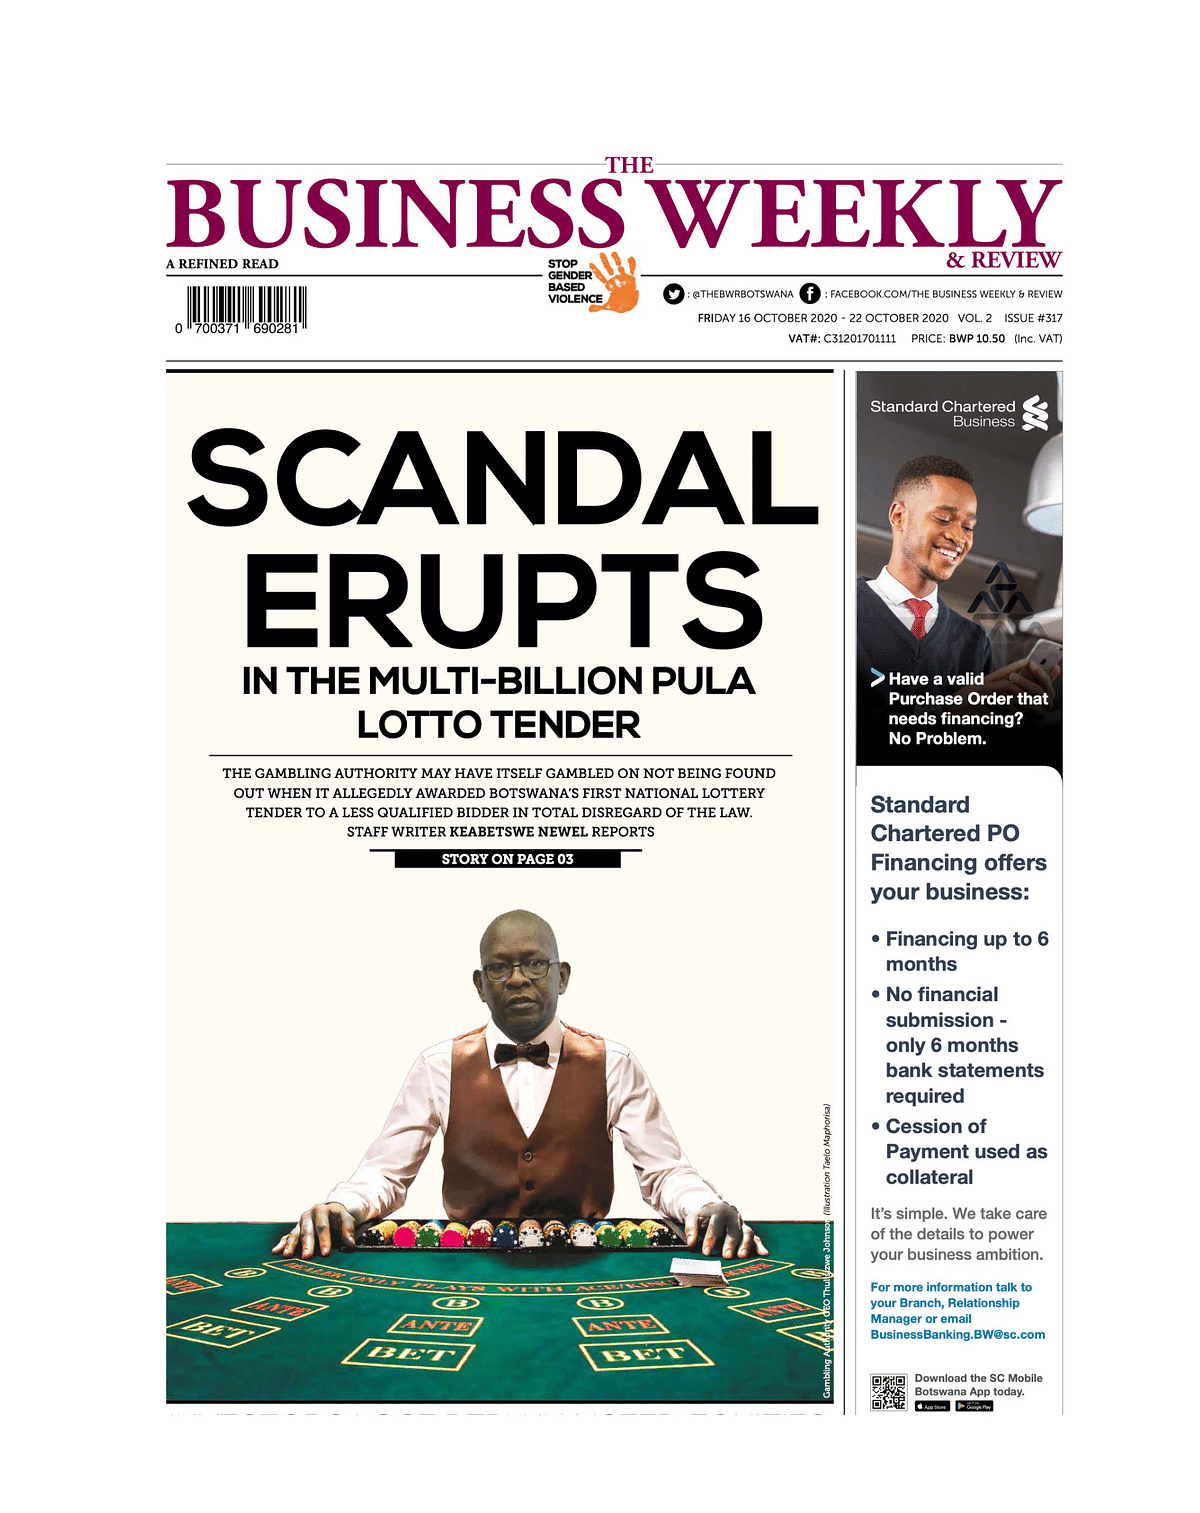 The Business Weekly and Review 16 October 2020